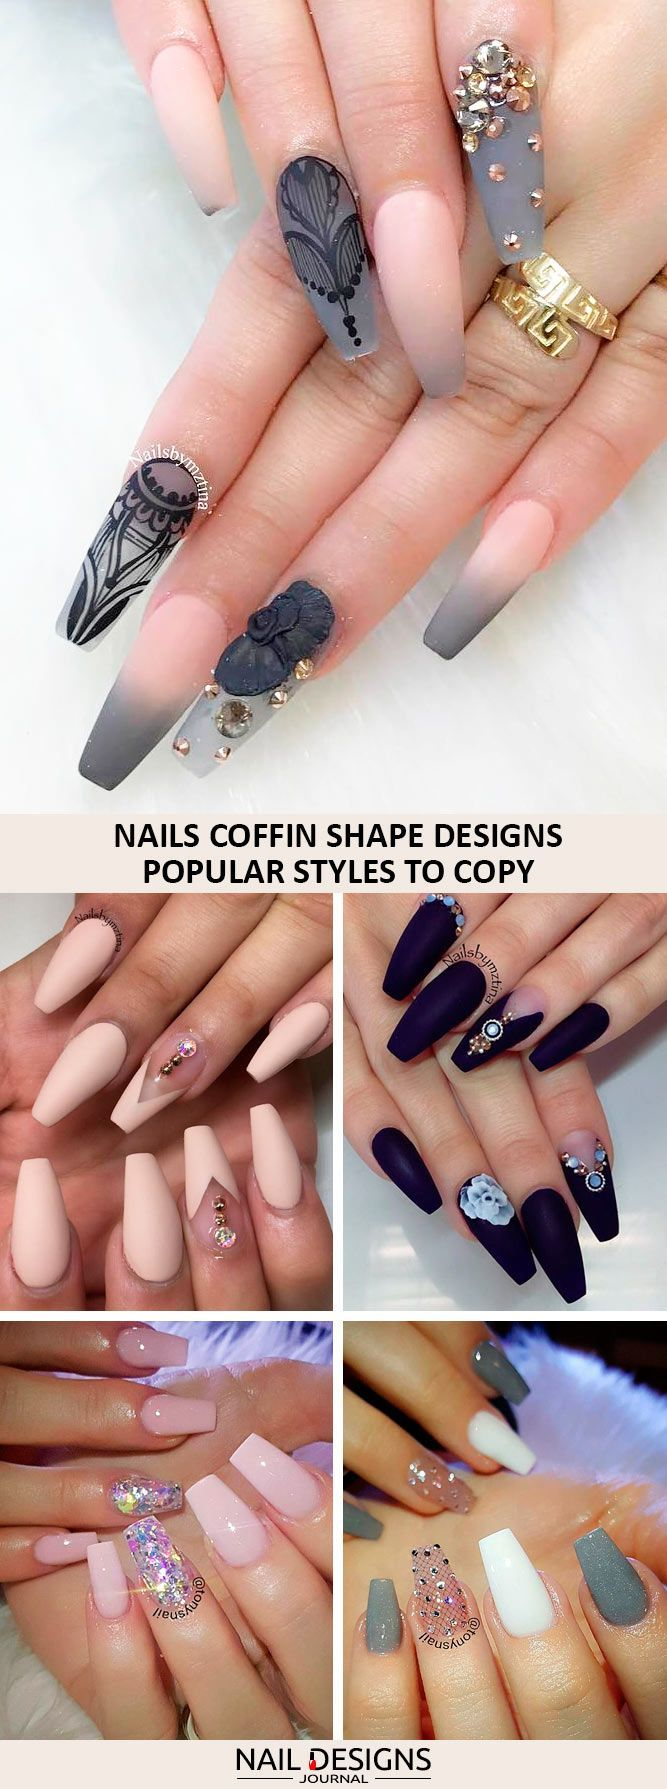 21 Cool Designs for Your Nails Coffin Shape | Experiment, Nails and ...